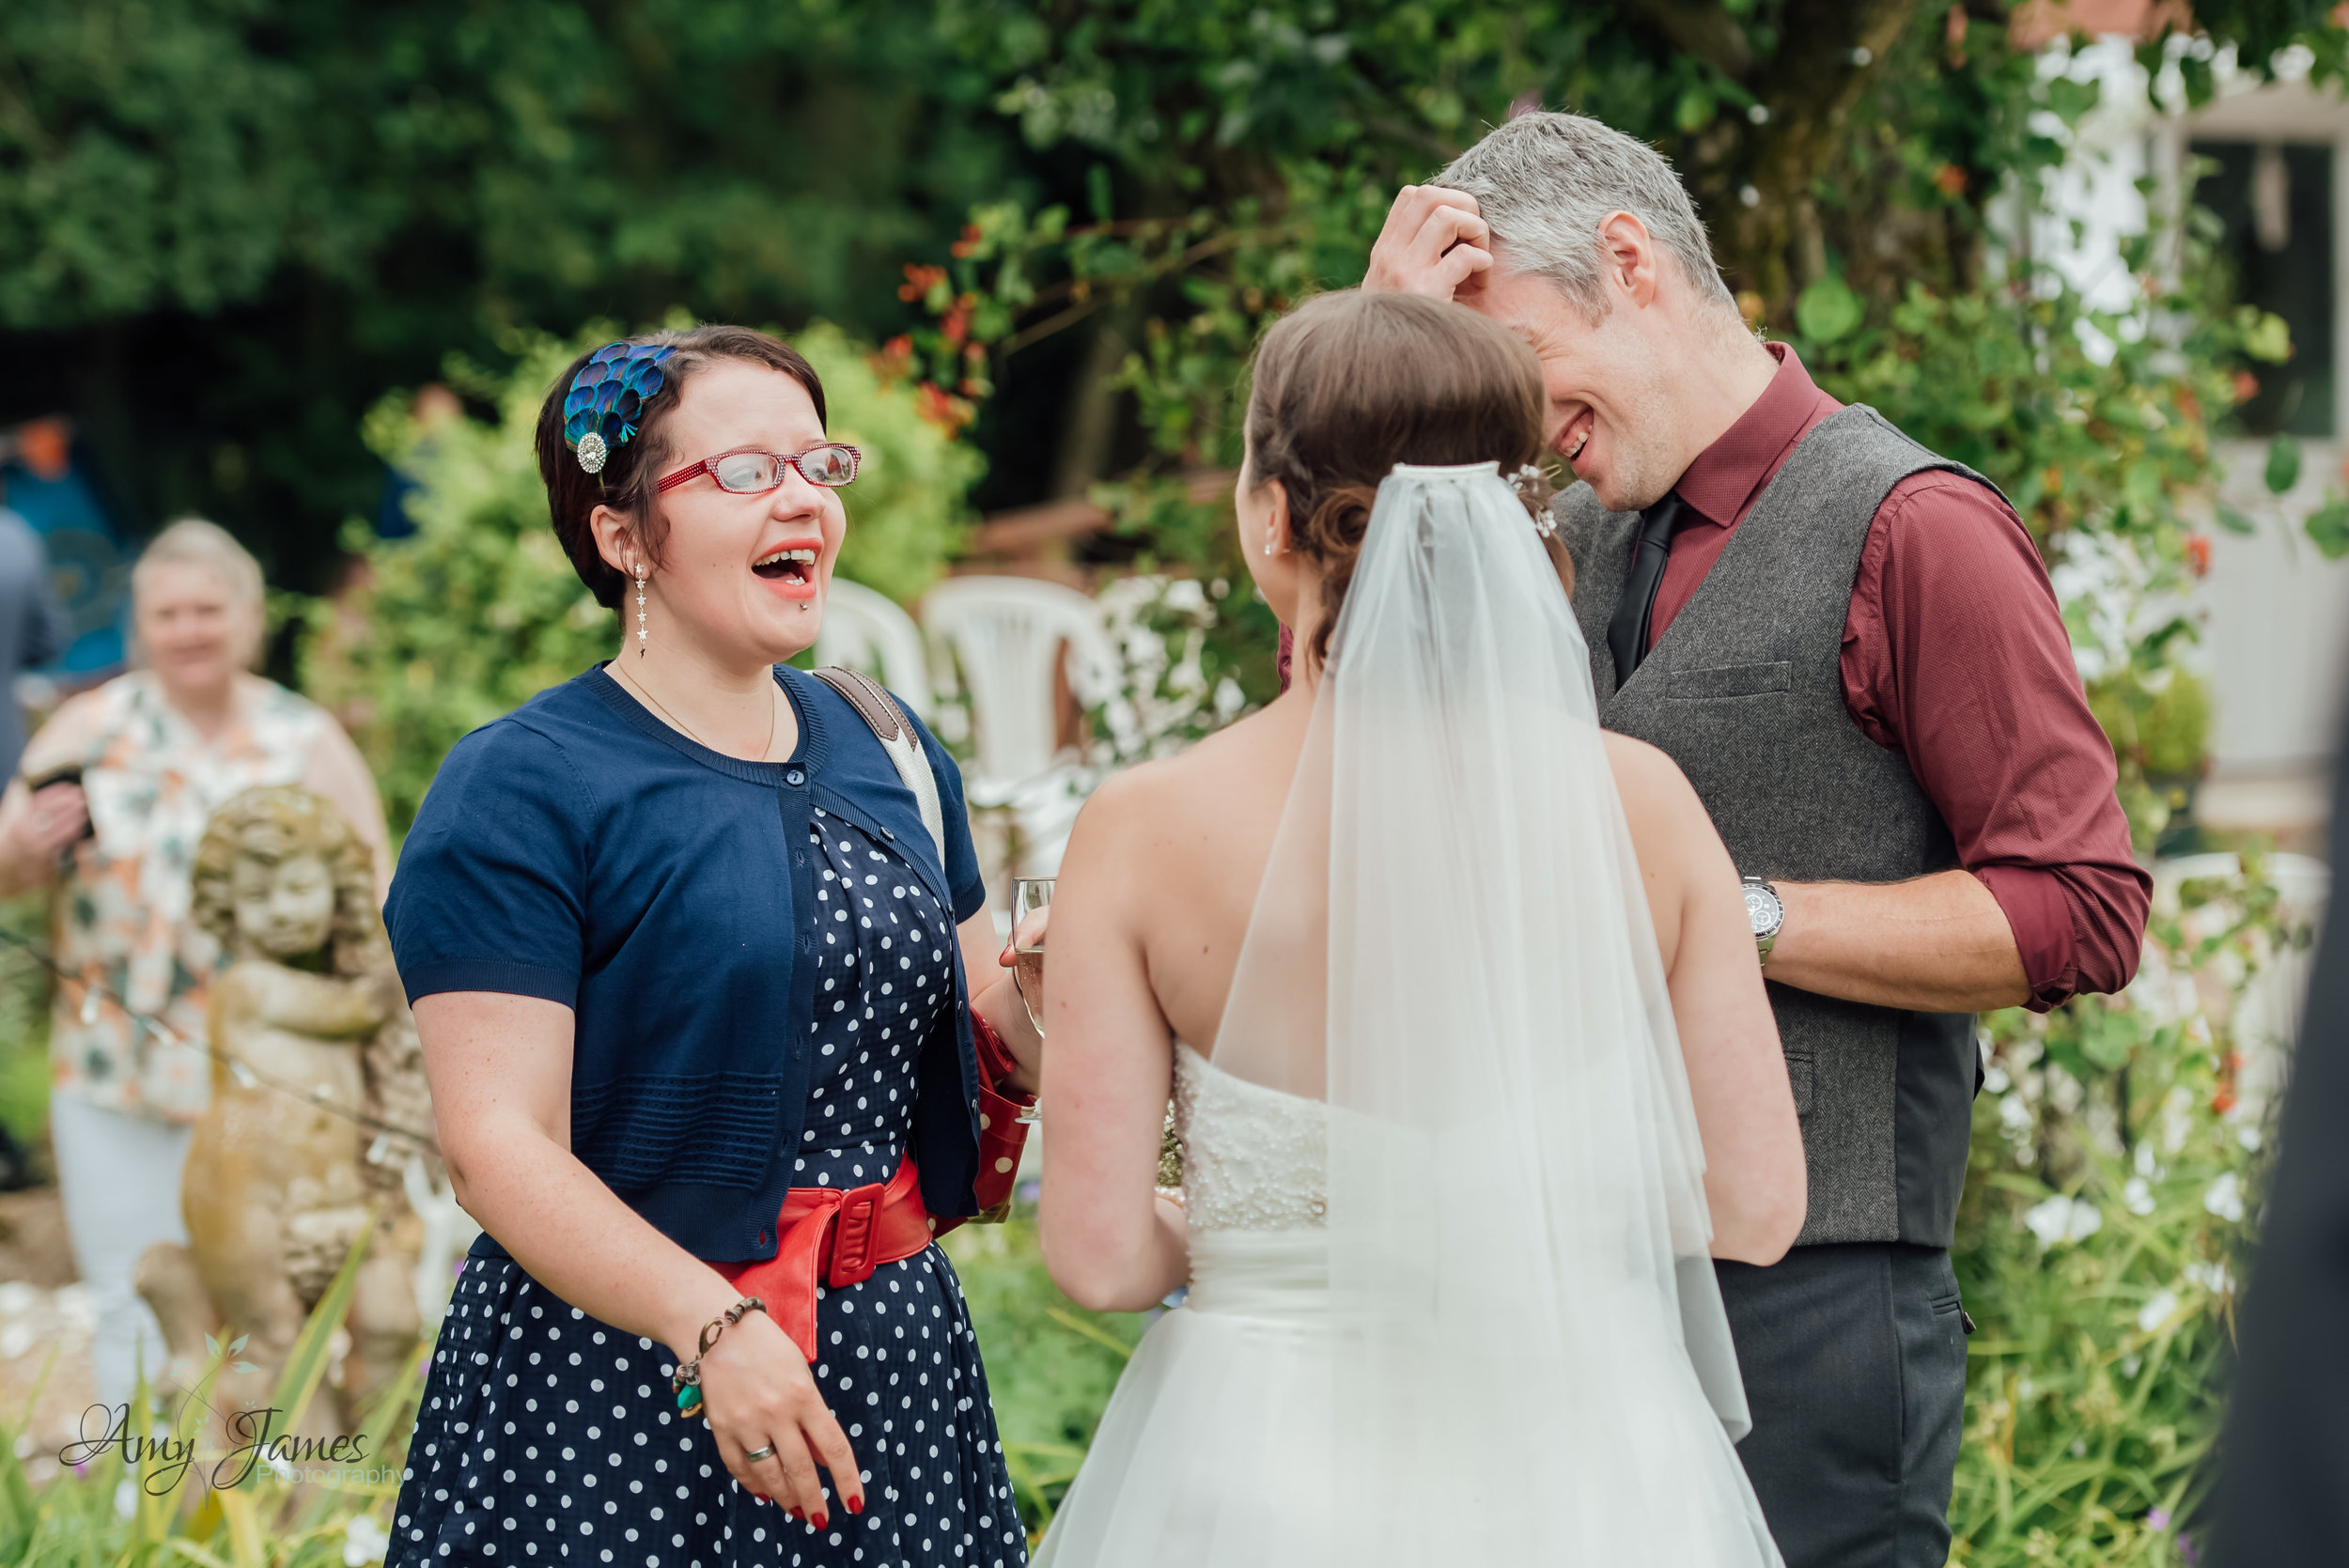 guest laughing at outdoor wedding ceremony by Amy James Photography Hampshire wedding photographer at Taplins Place